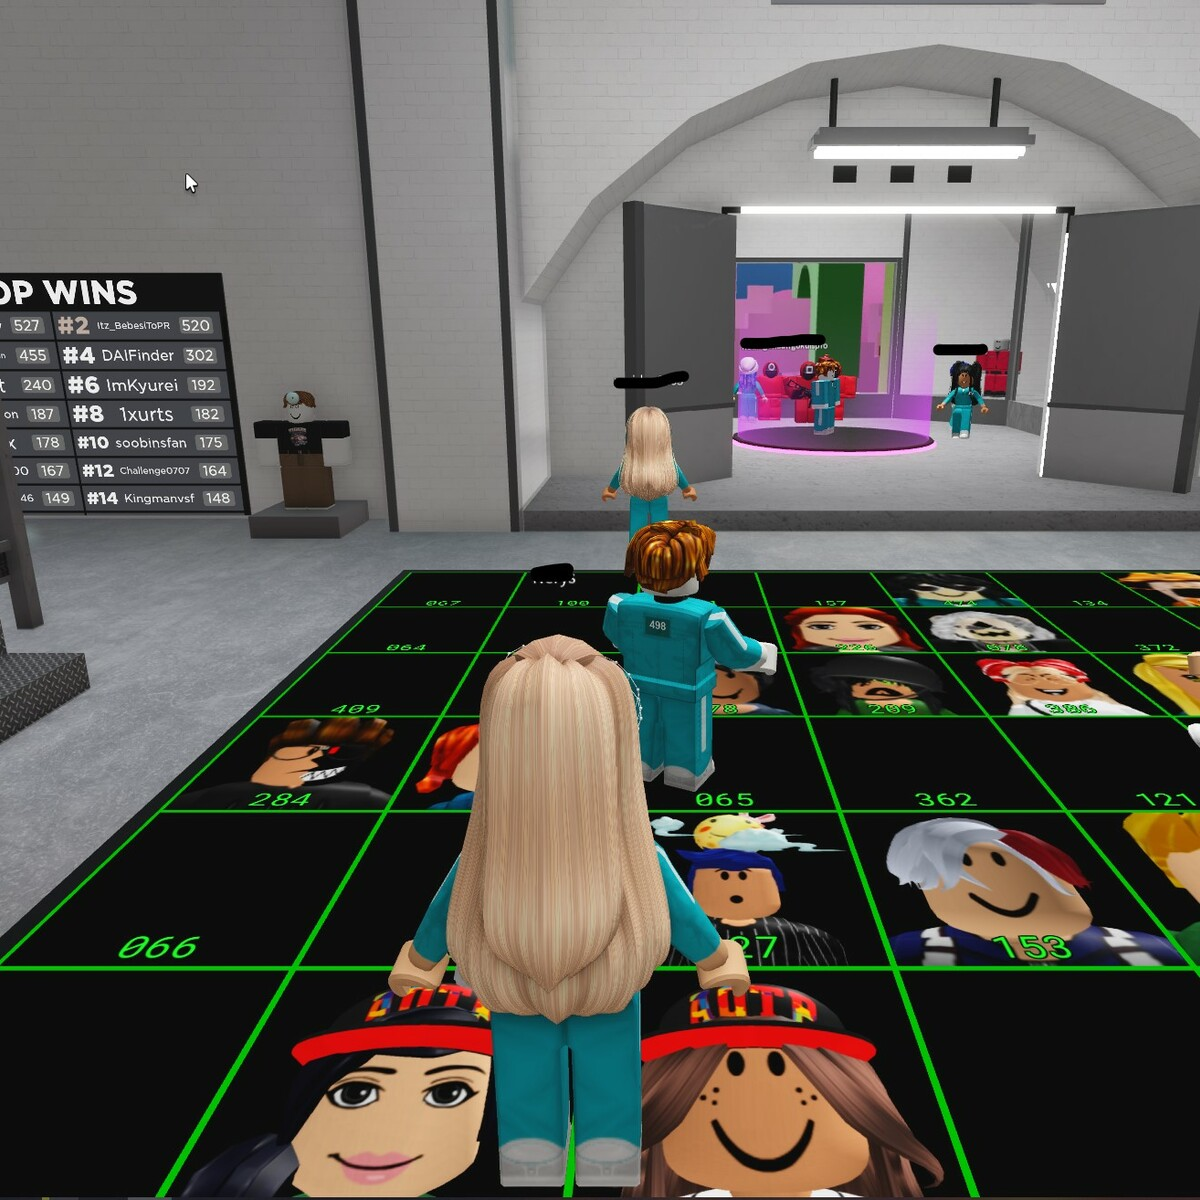 Roblox Squid Game How To Start And Play The Fish Game In Roblox Vg247